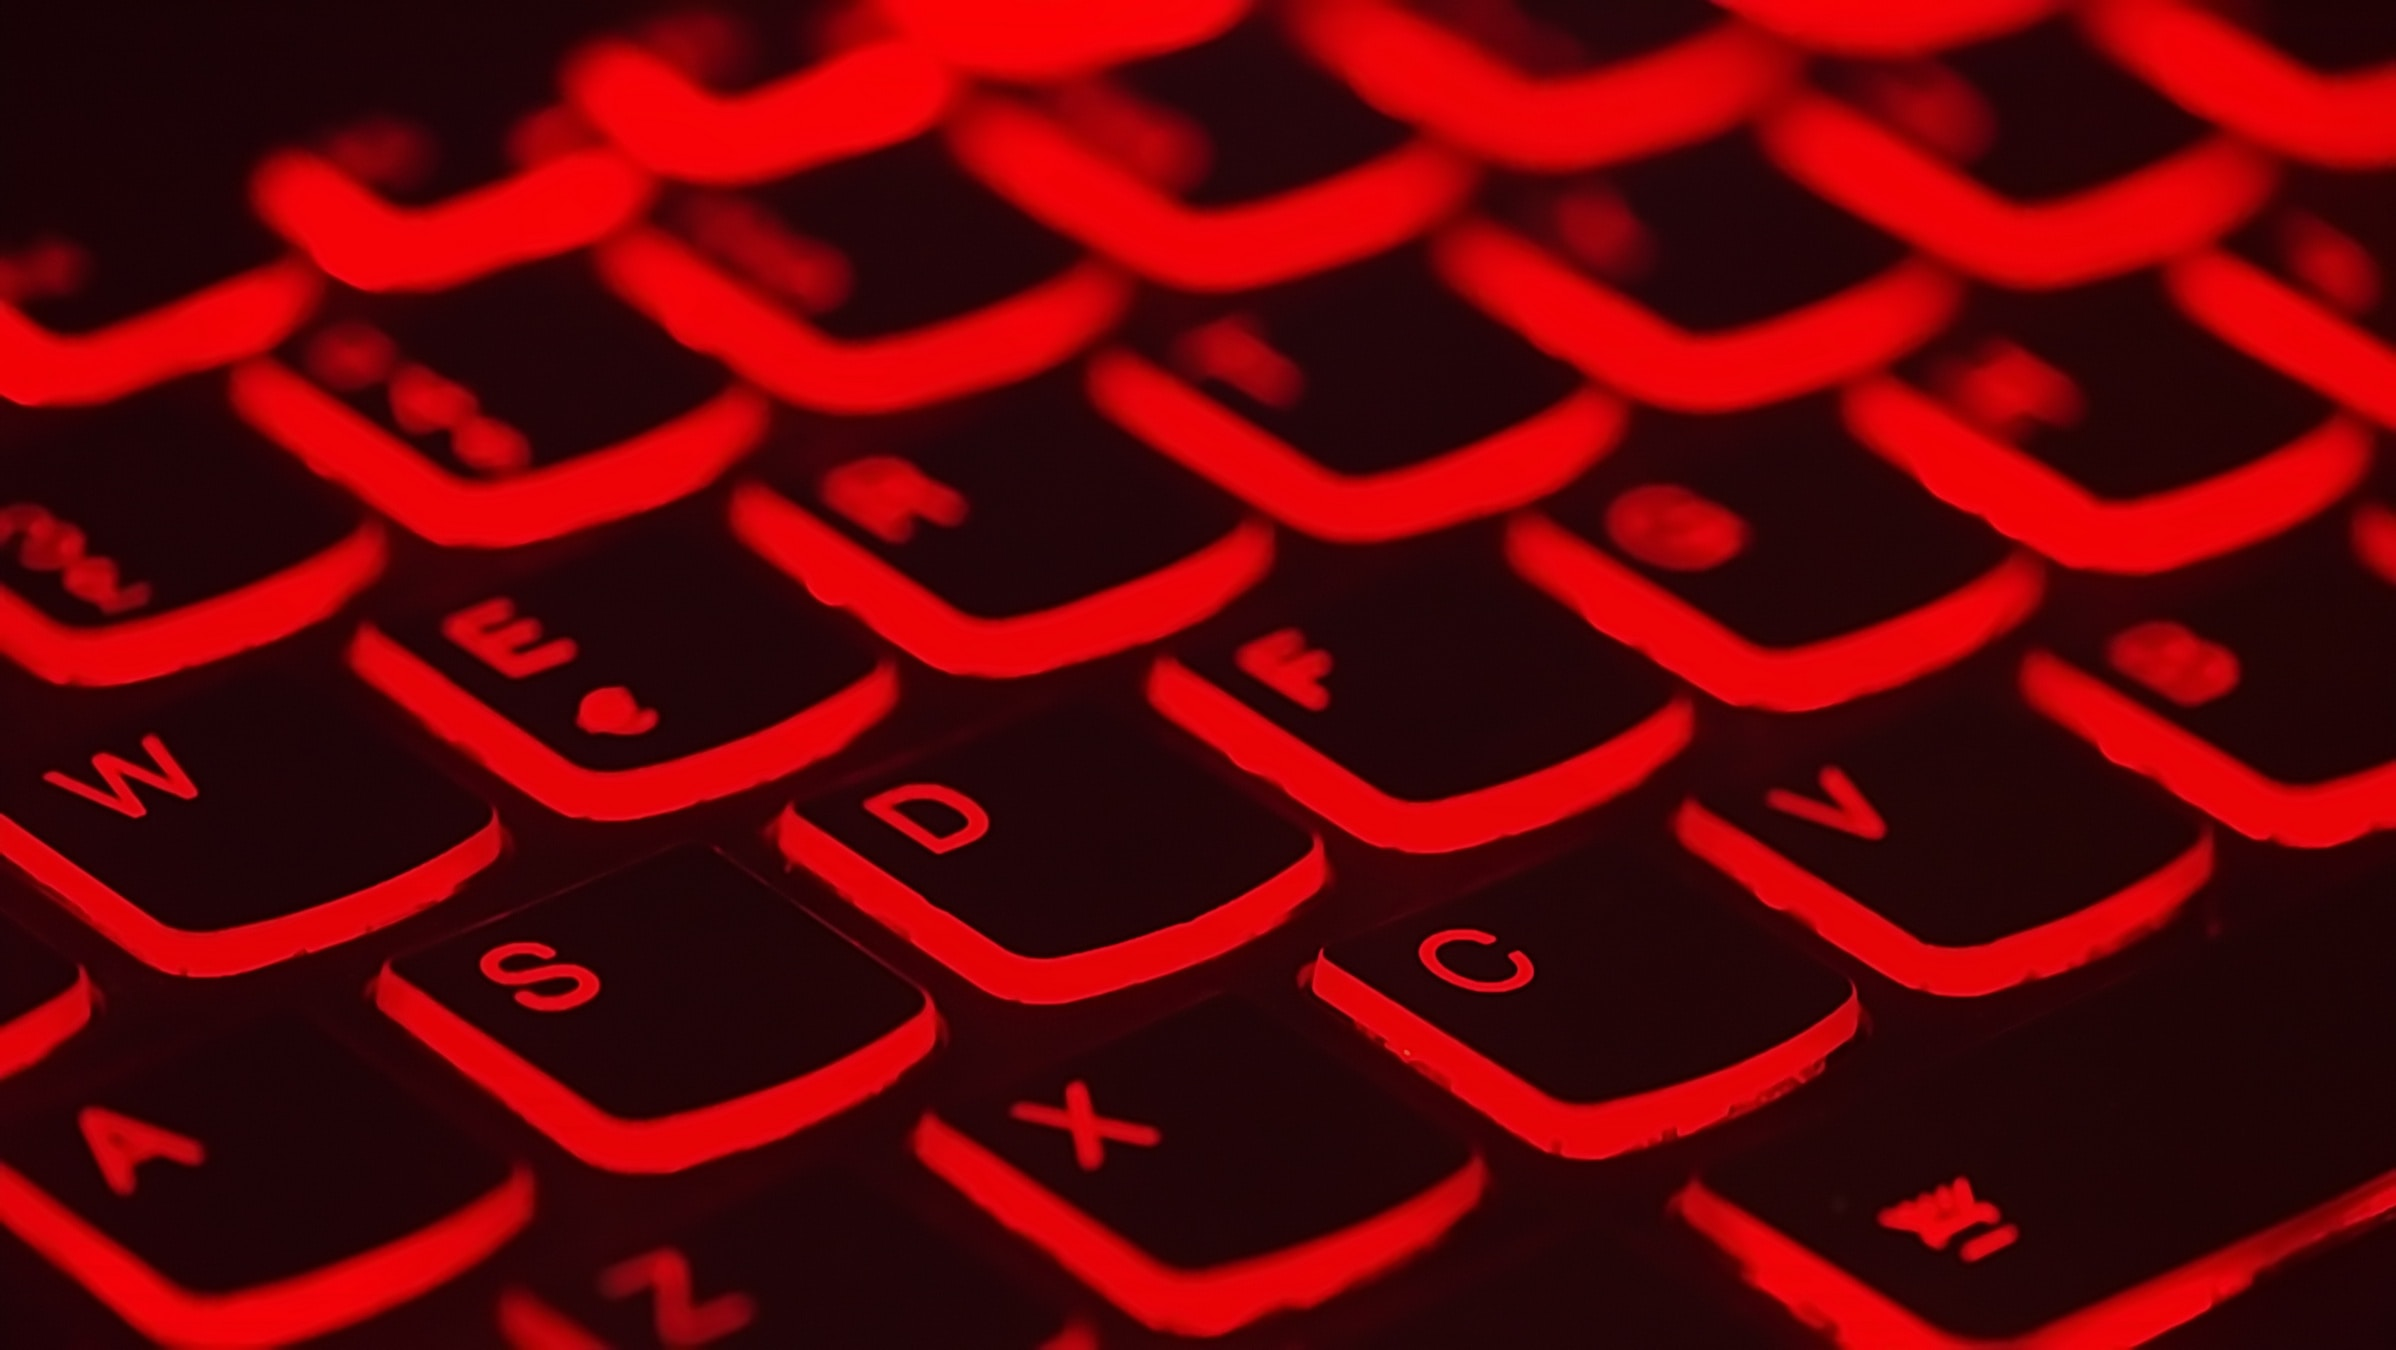 A black keyboard with a red backlight.